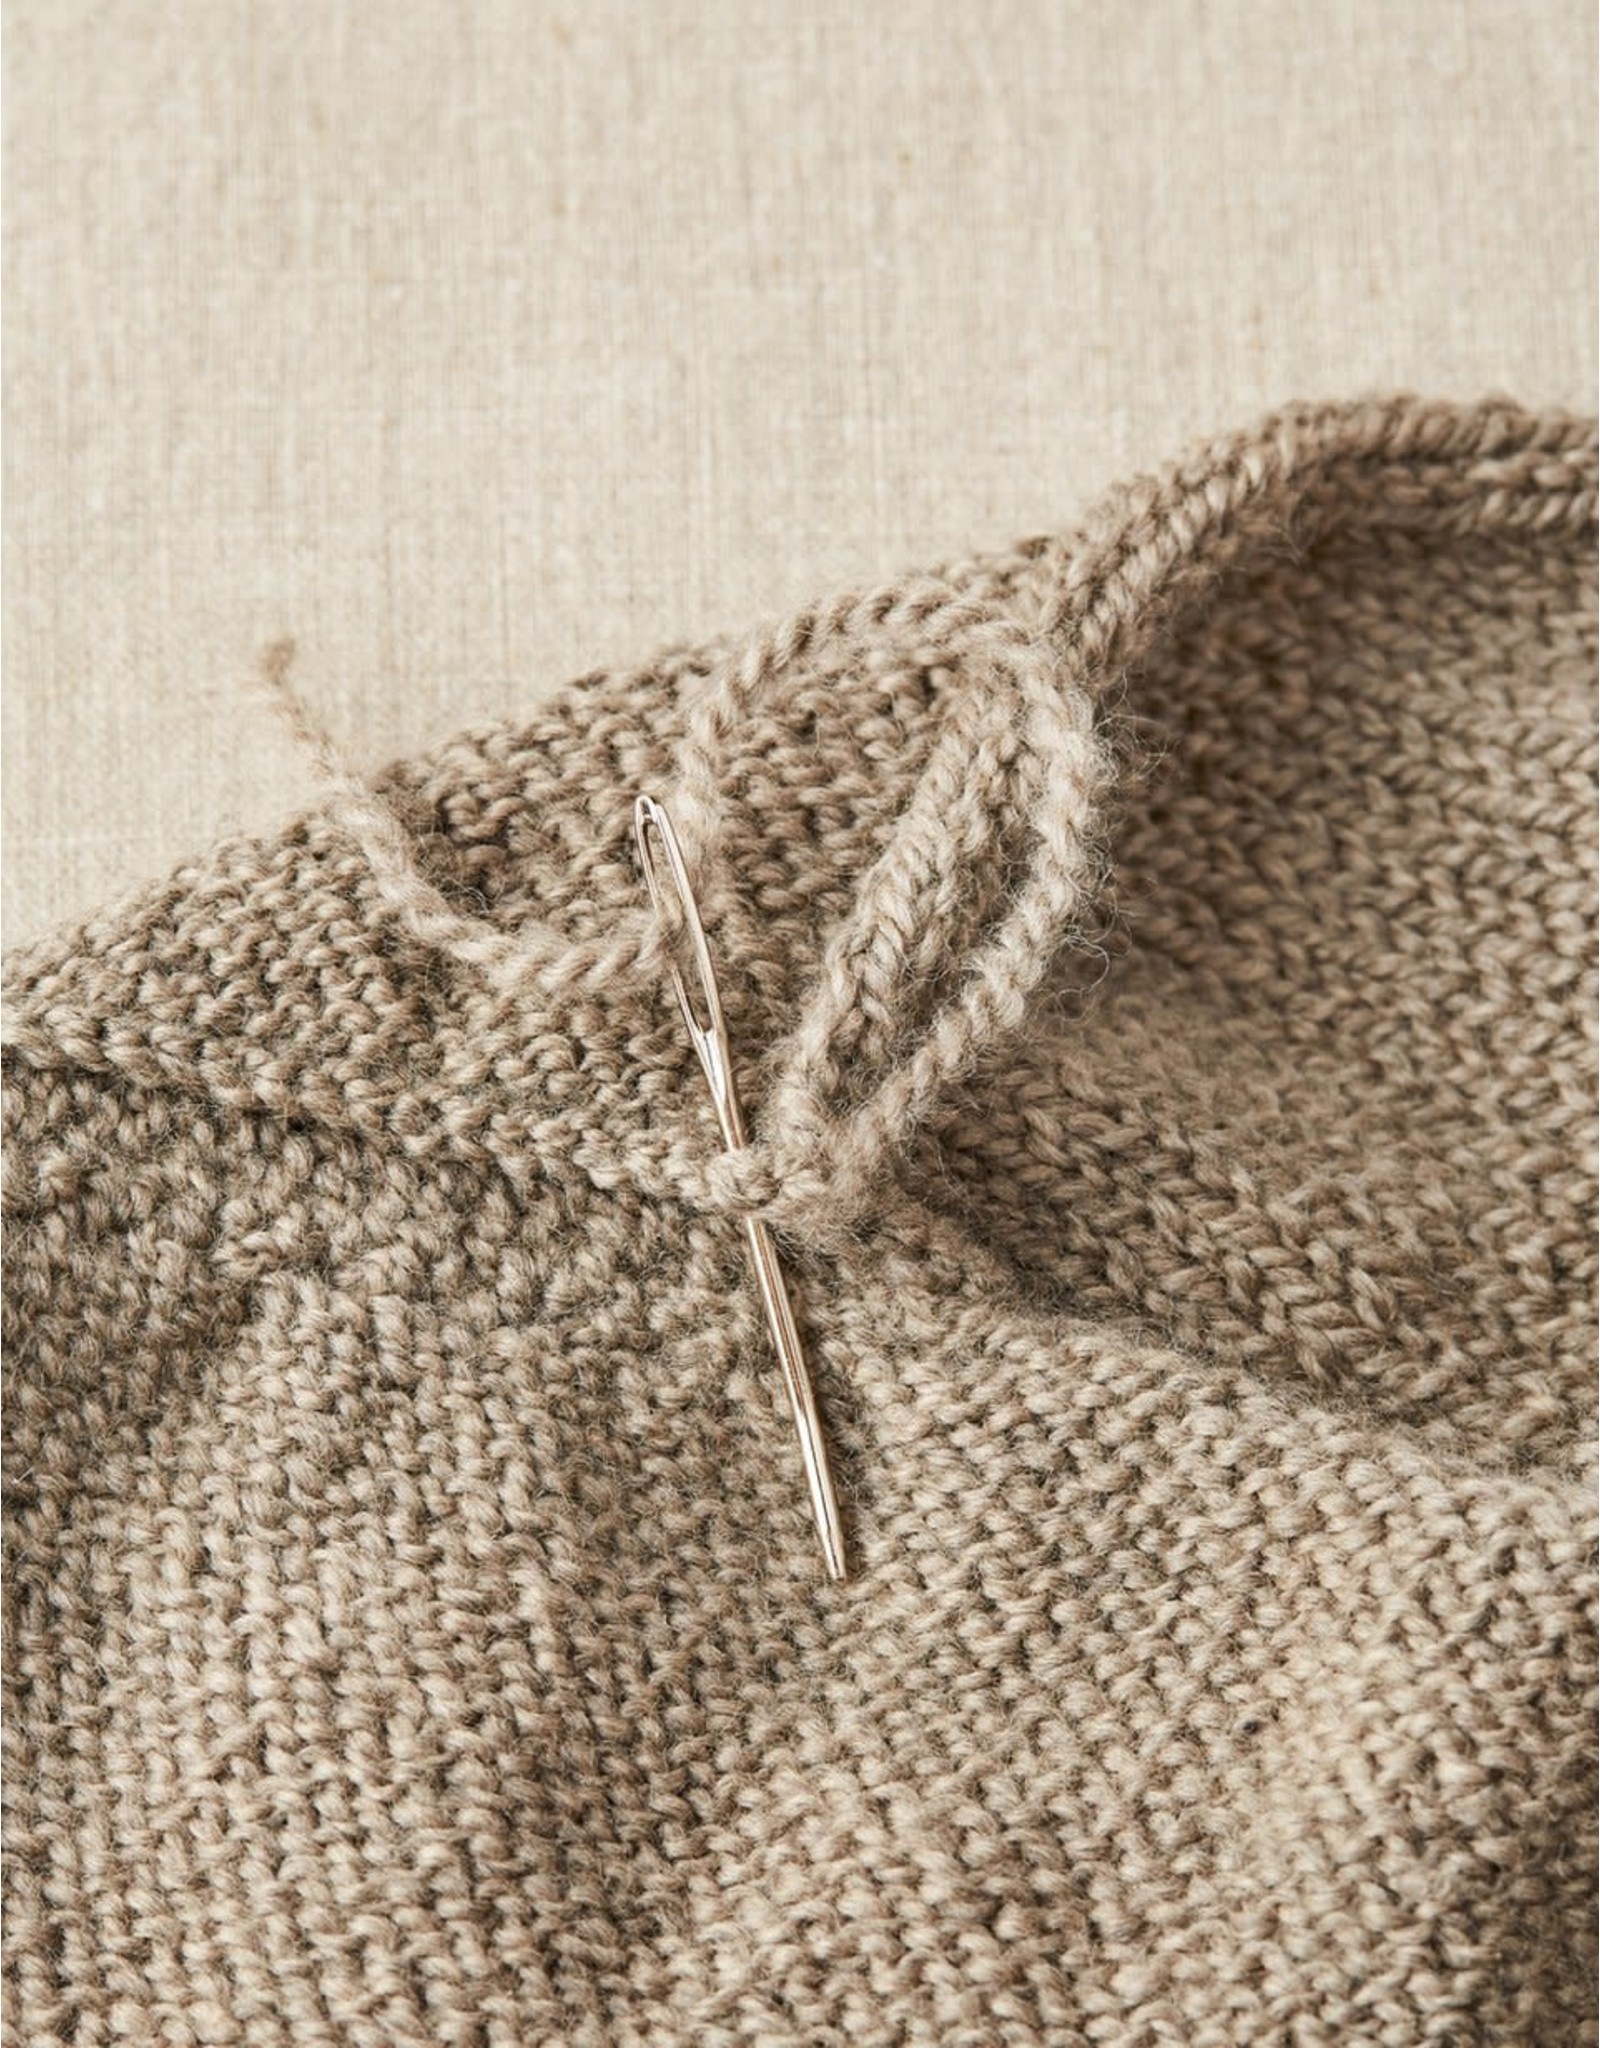 Tapestry Needle by Cocoknits